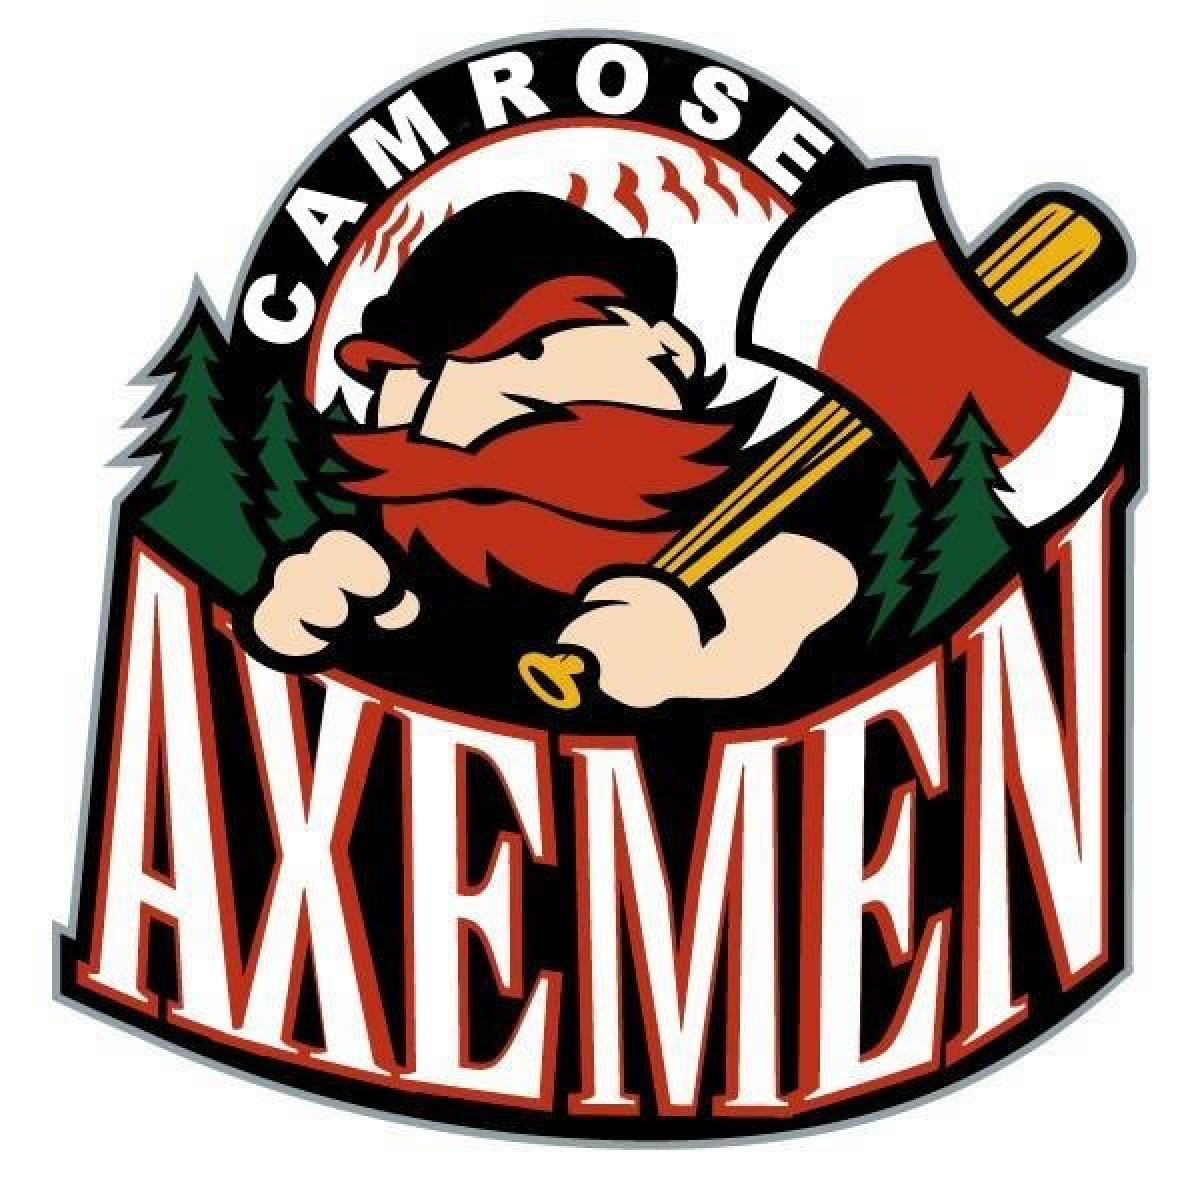 AXEMEN RETURN TO POWERLINE BASEBALL LEAGUE